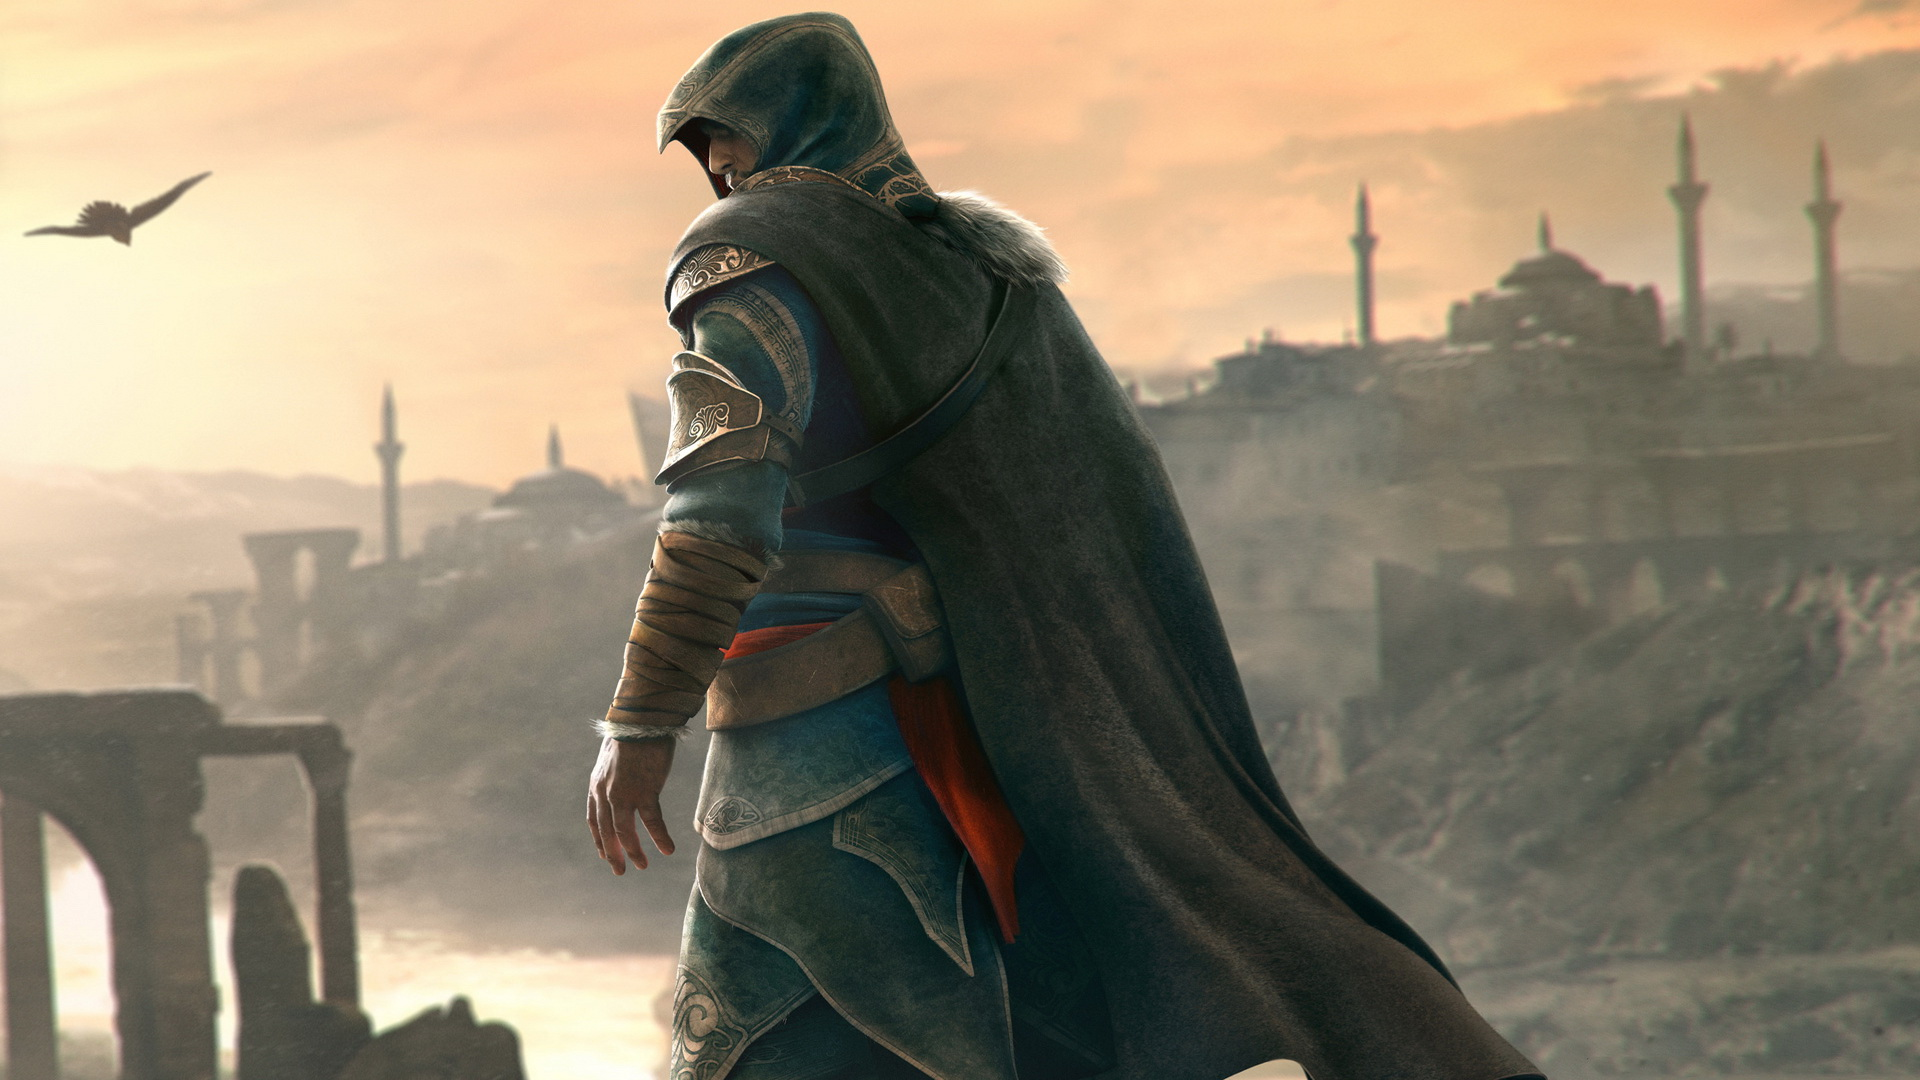 Game HD Wallpapers Video Games HD 1080p Wallpaper assassins creed 1920x1080